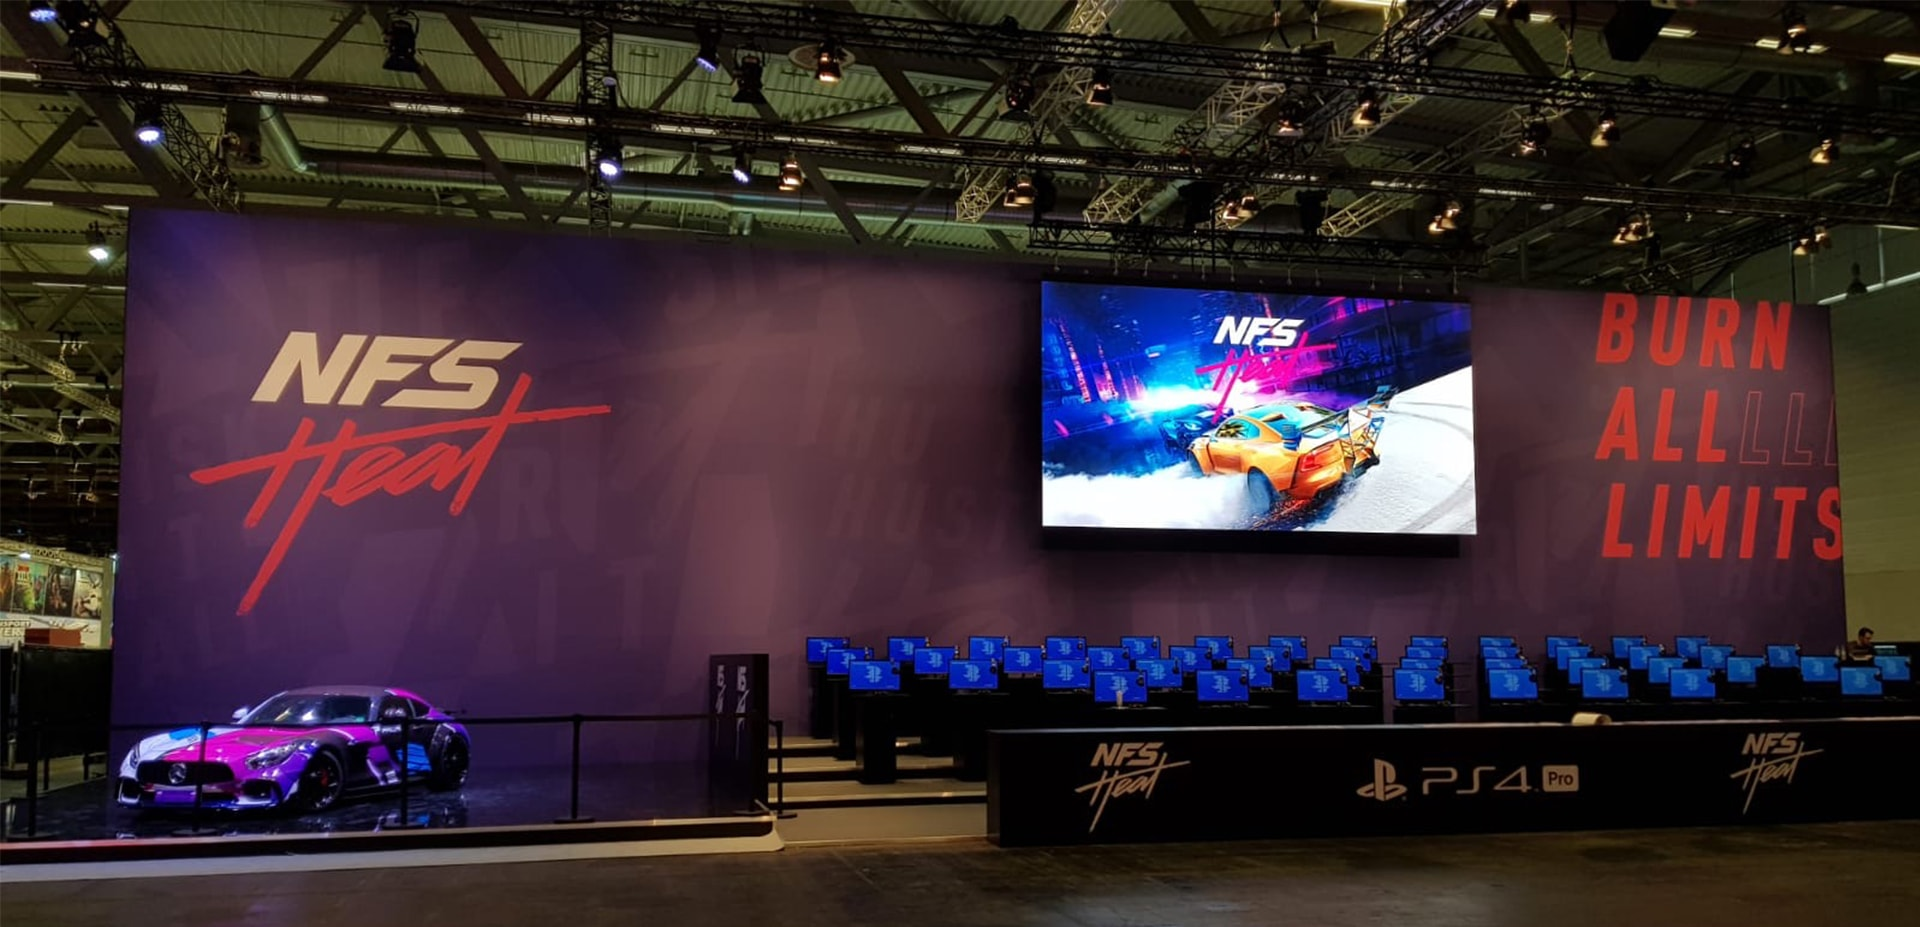 Gamescom Need for Speed Booth